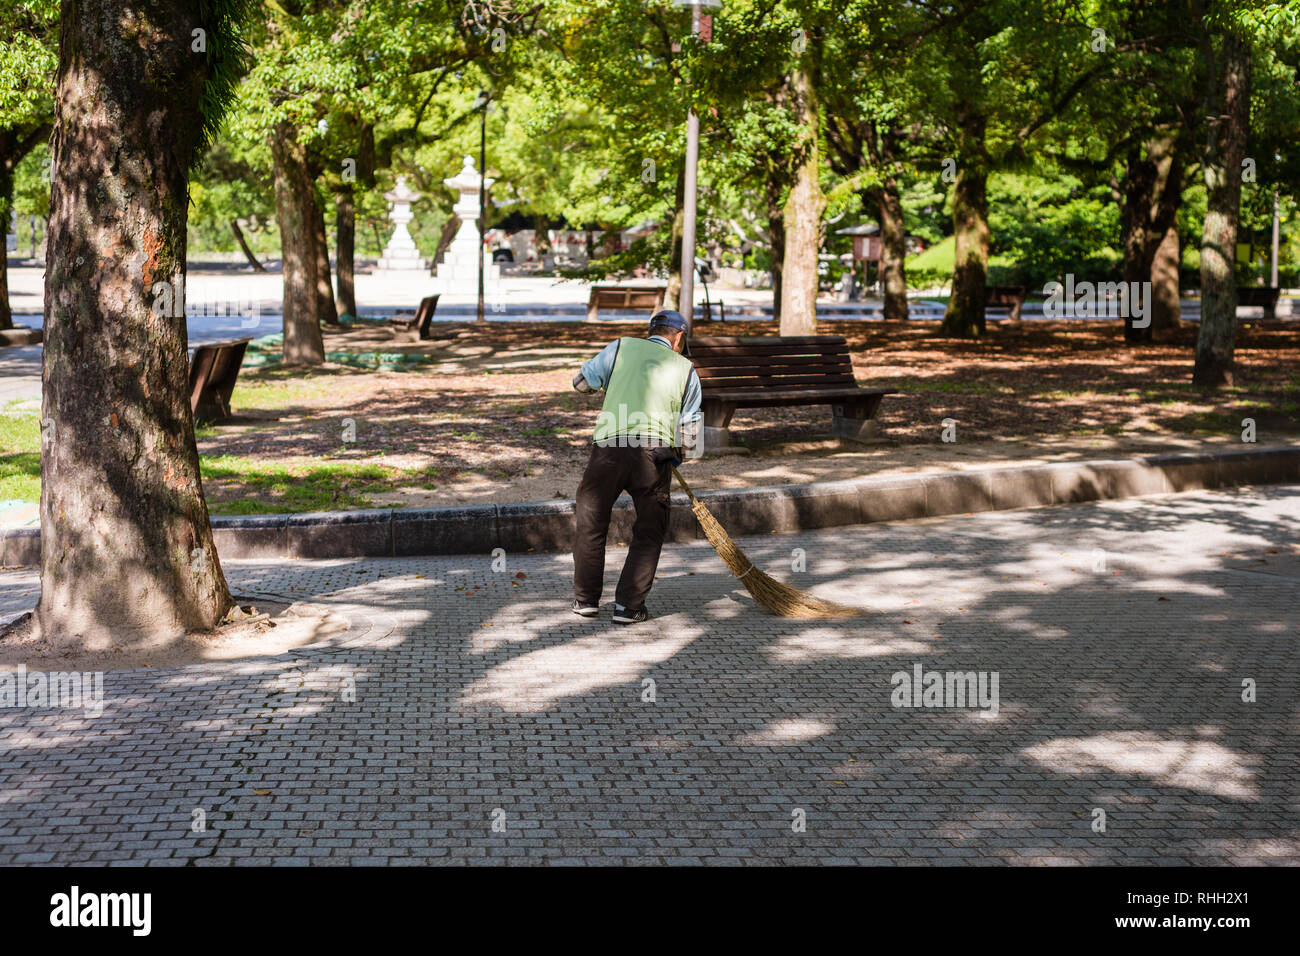 and old man sweeping in the park. Staying active in retirement is one of the secrets of Japan's long life expectancy - Stock Image